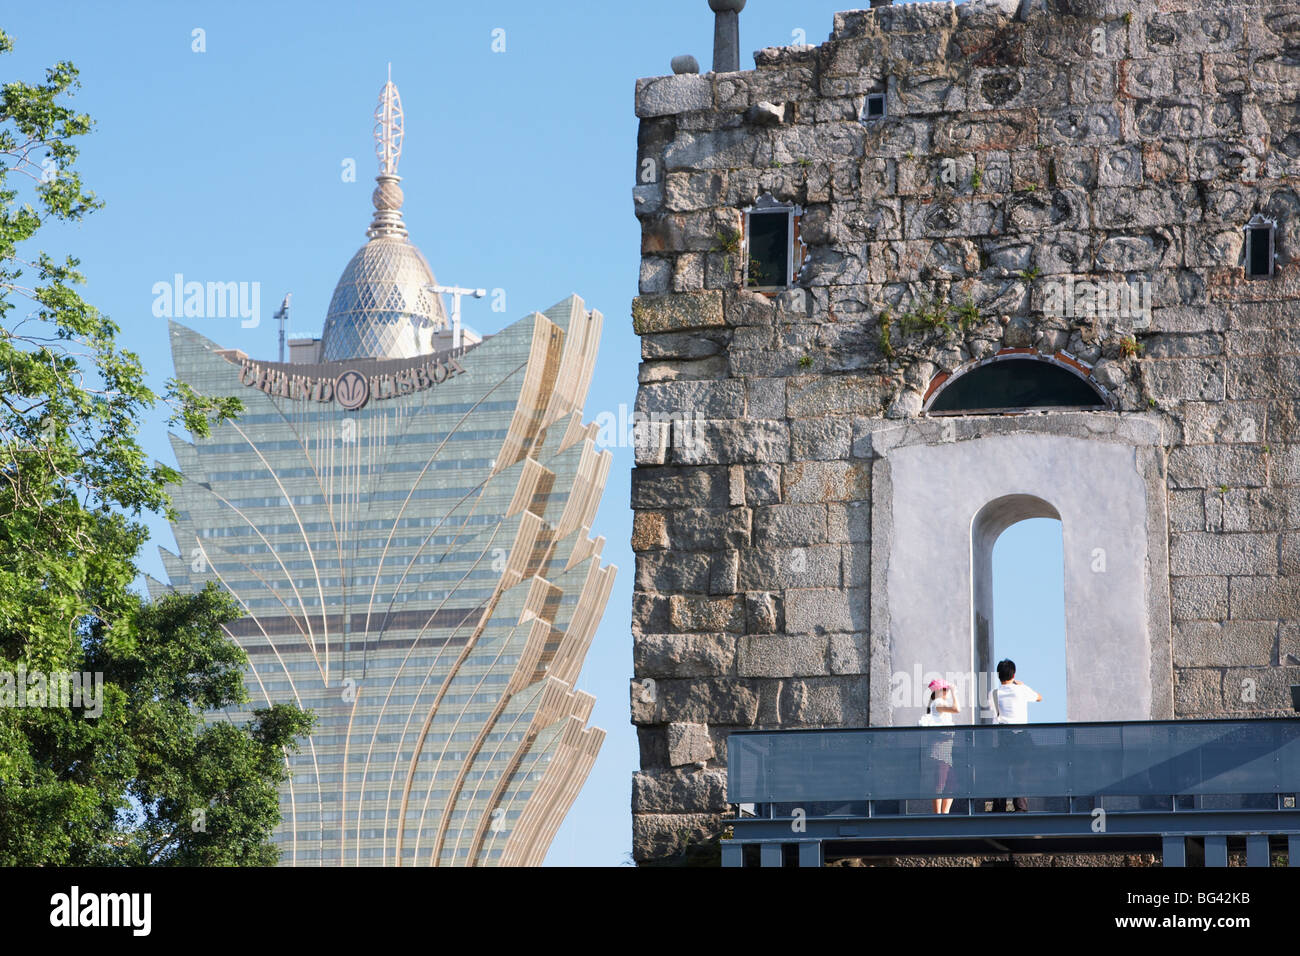 Ruins of Church of St. Paul with Grand Lisboa Casino in background, Macau, China, Asia Stock Photo